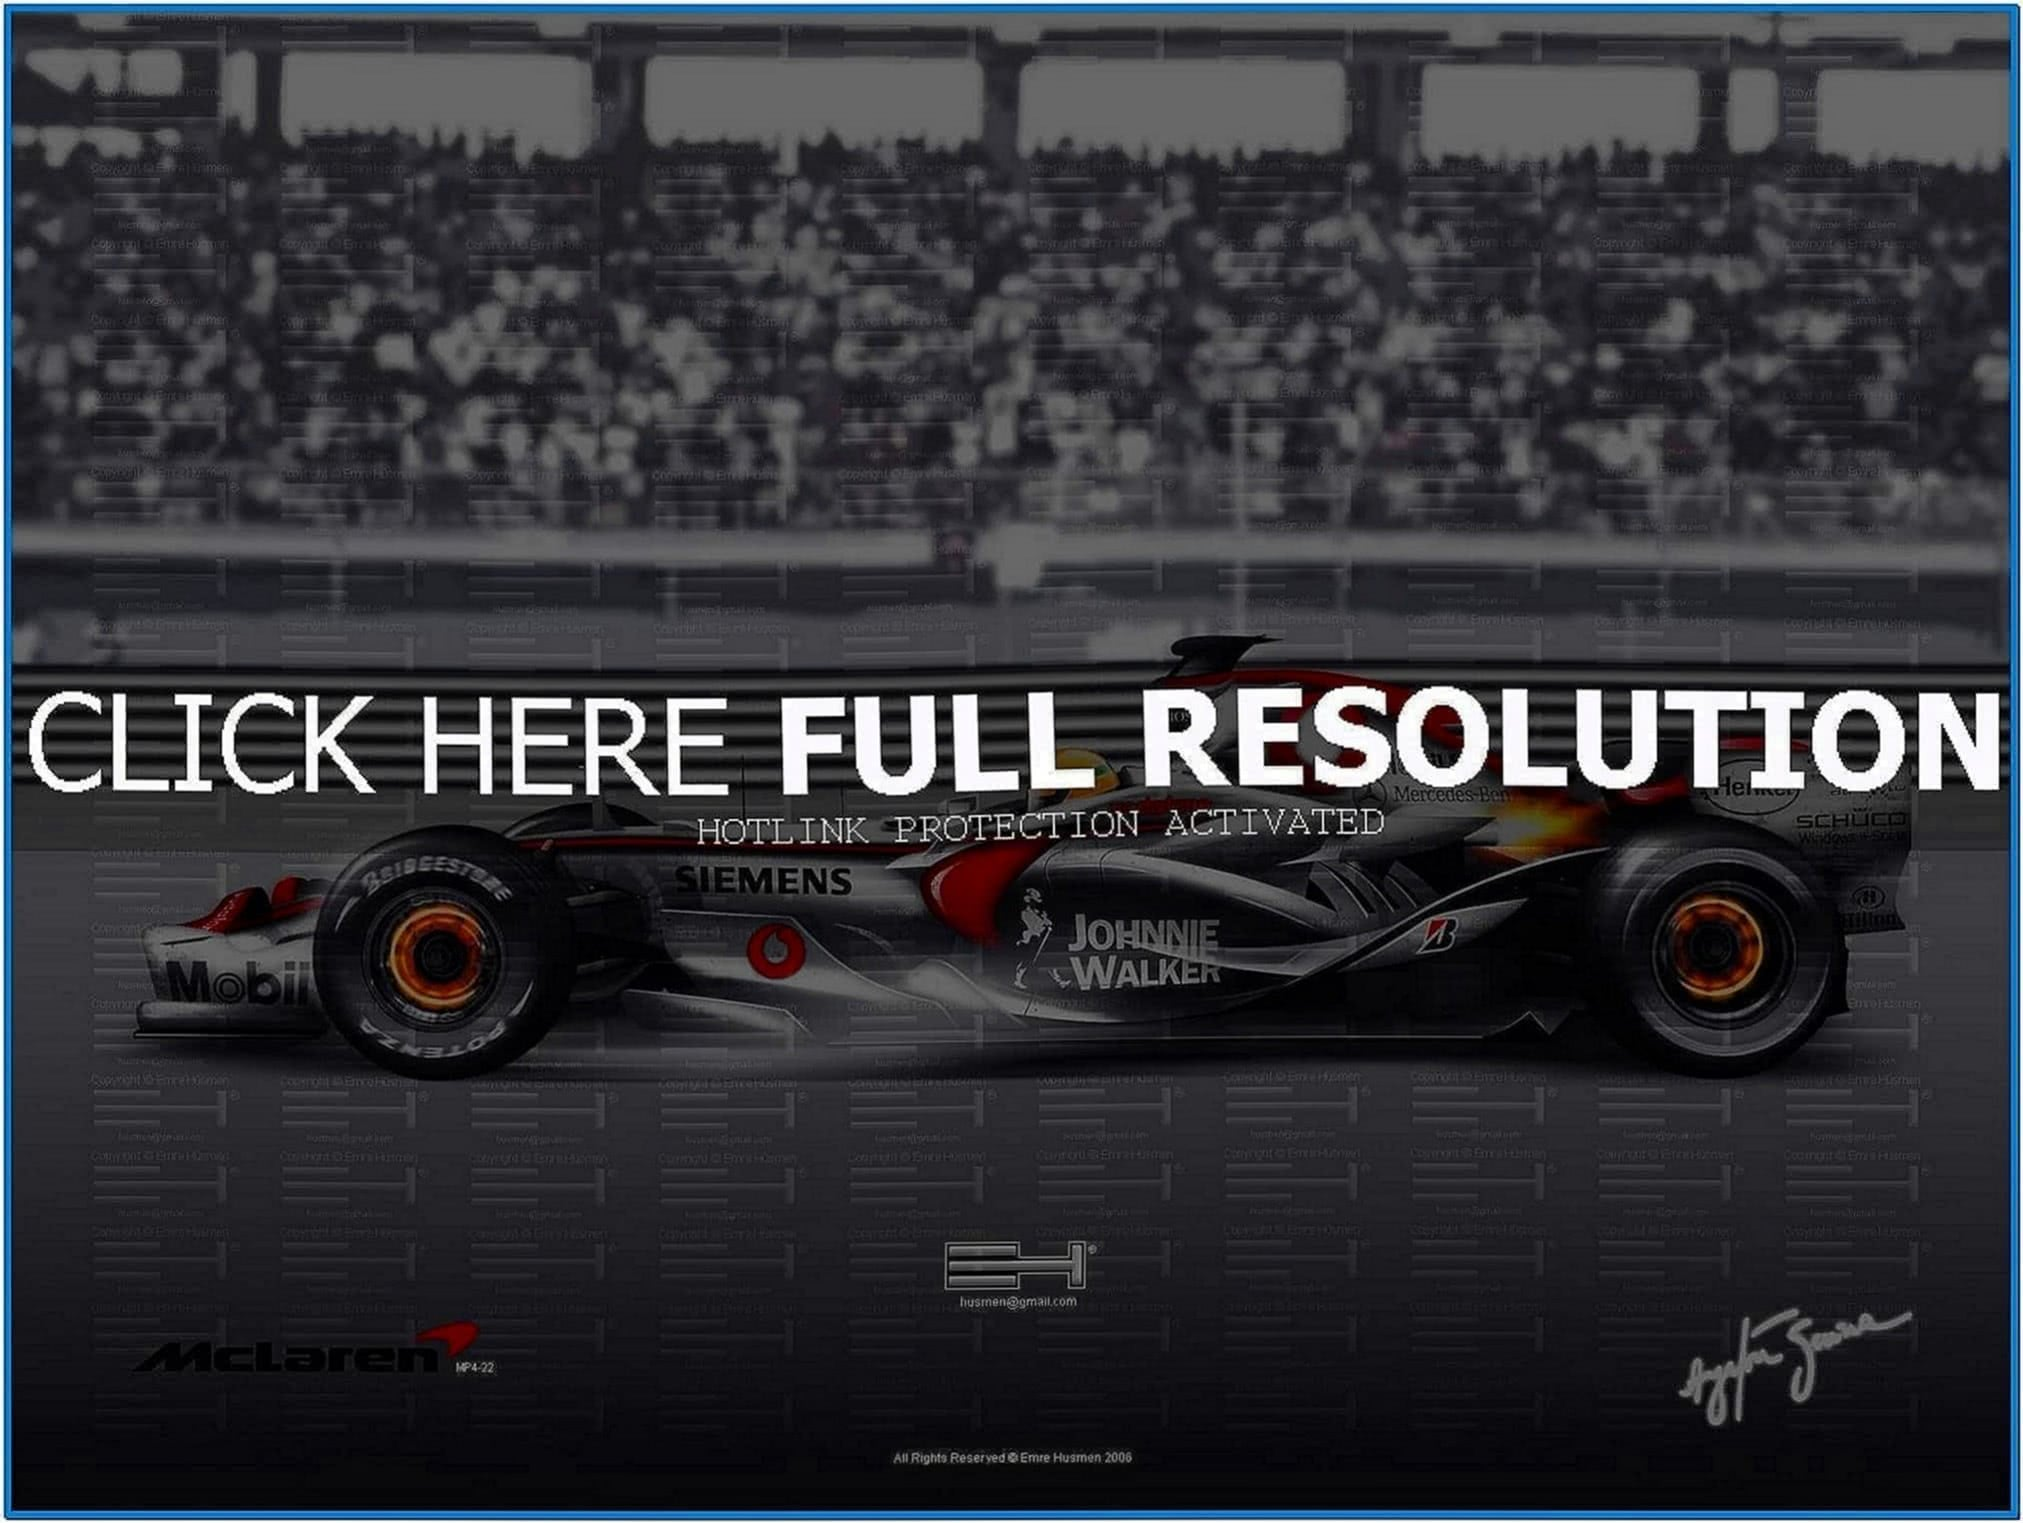 Mclaren Mercedes F1 Screensaver